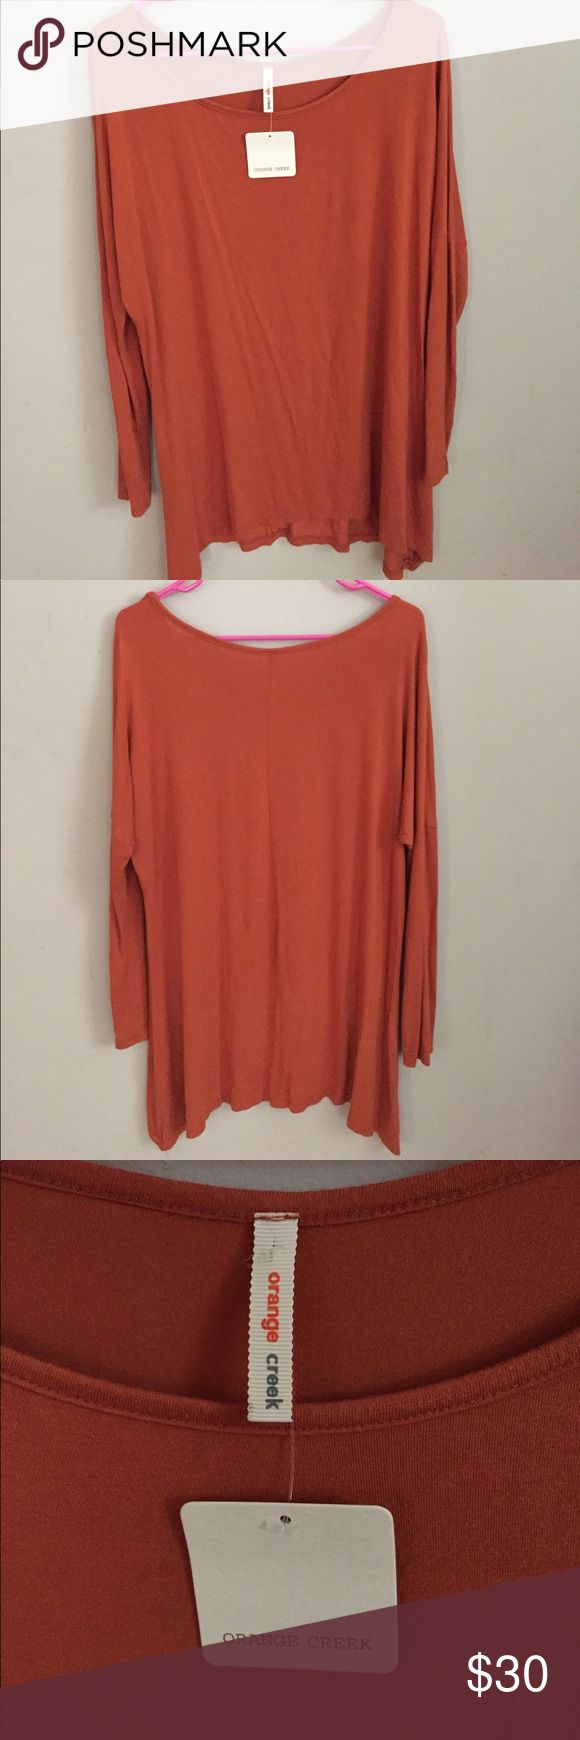 Piko Style Tunic Piko style burnt orange long sleeve shirt from Apricot Lane Boutique Tops Tunics